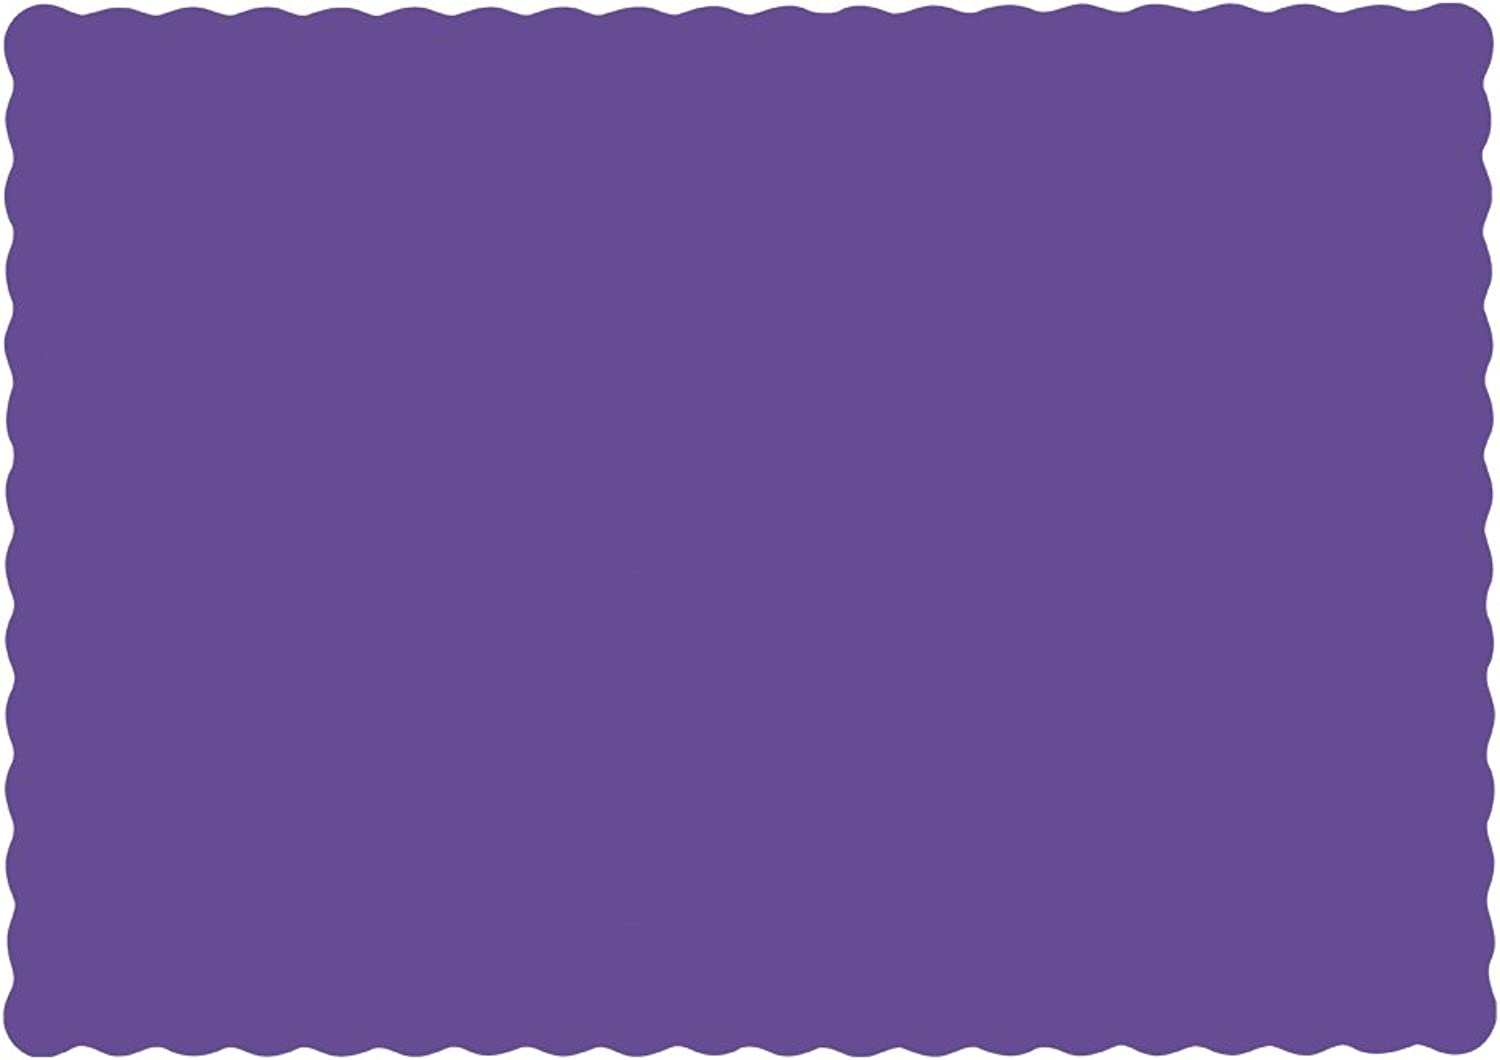 Hoffmaster 310557 Paper Placemat, 13-1 2  Length x 9-1 2  Width, Scalloped Edge, Purple (Case of 1000)